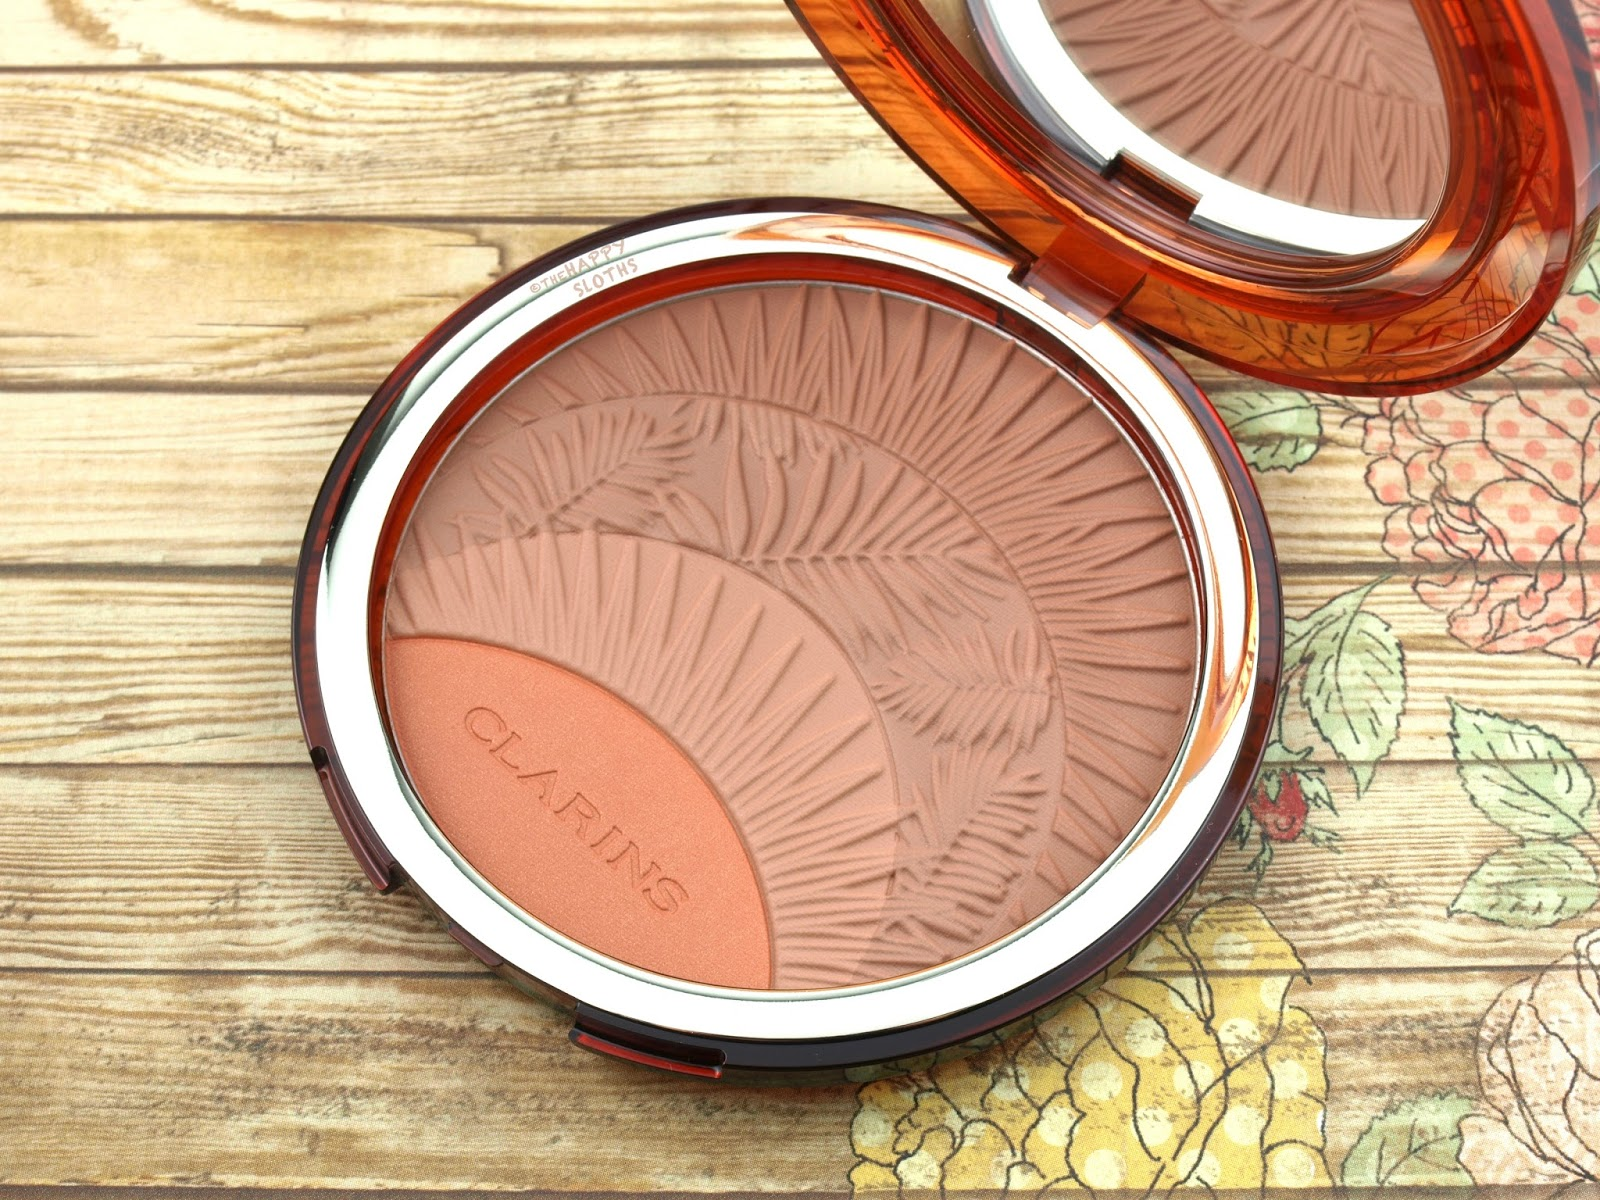 Clarins Summer 2017 Bronzing & Blush Compact: Review and Swatches